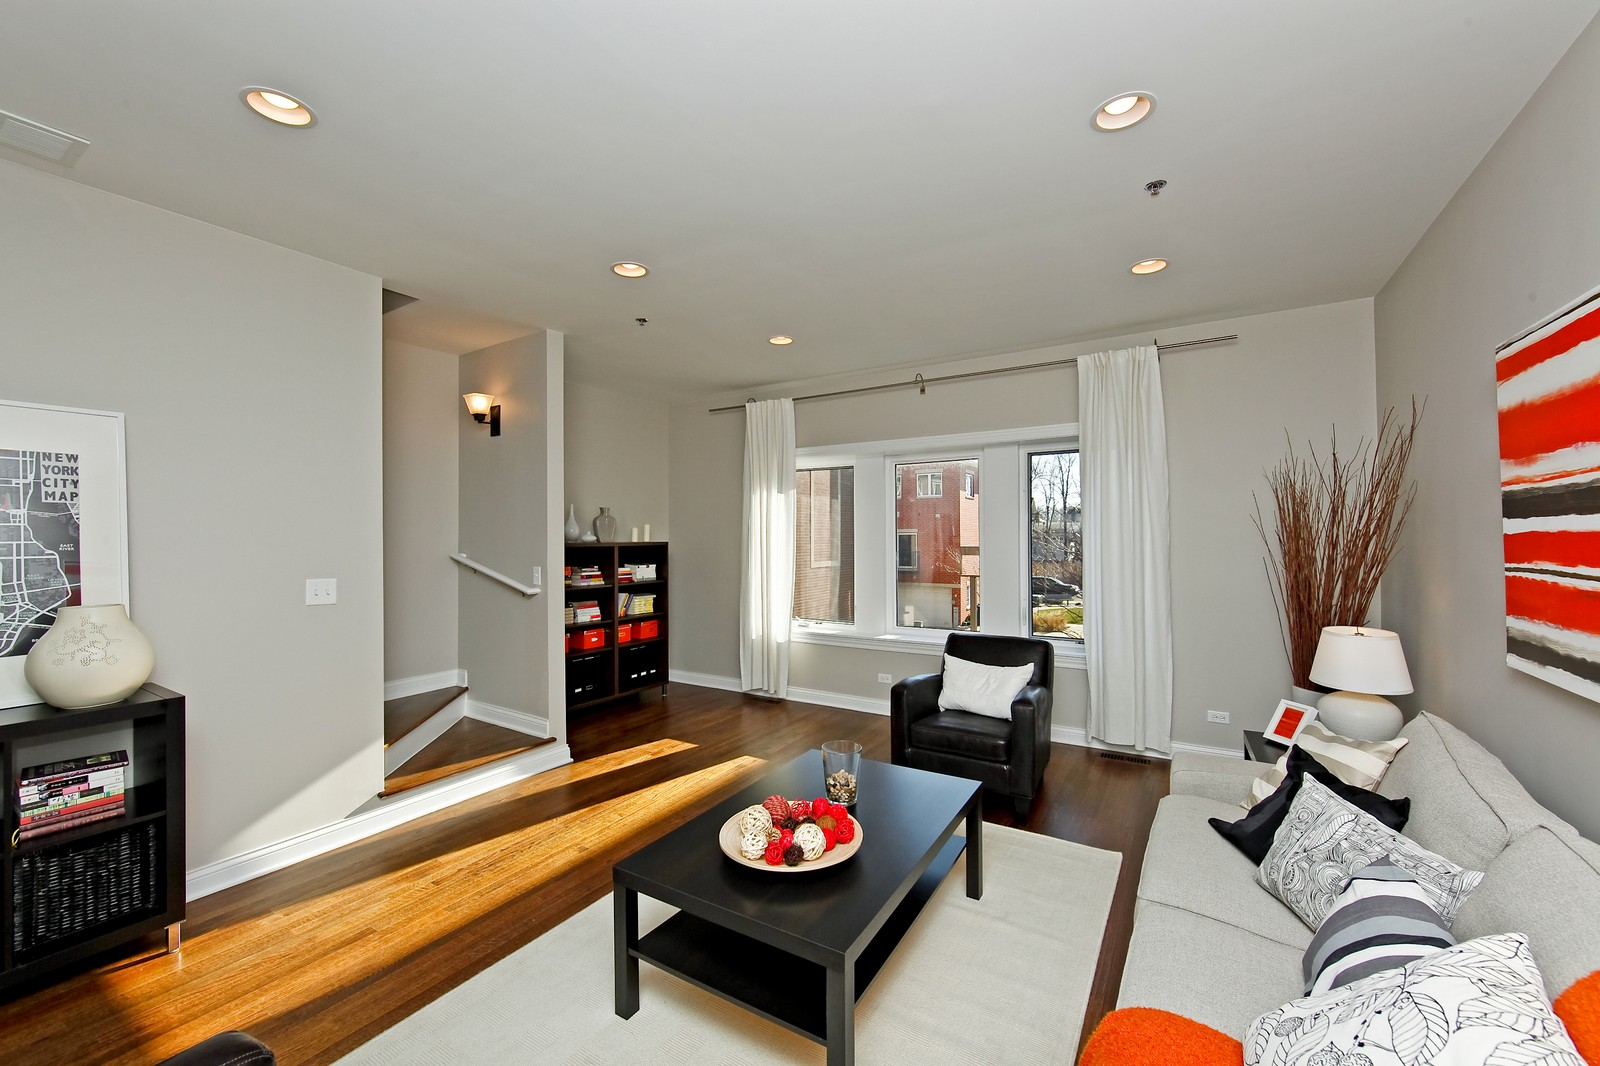 Real Estate Photography - 2422 W Bross, Chicago, IL, 60608 - Living Room